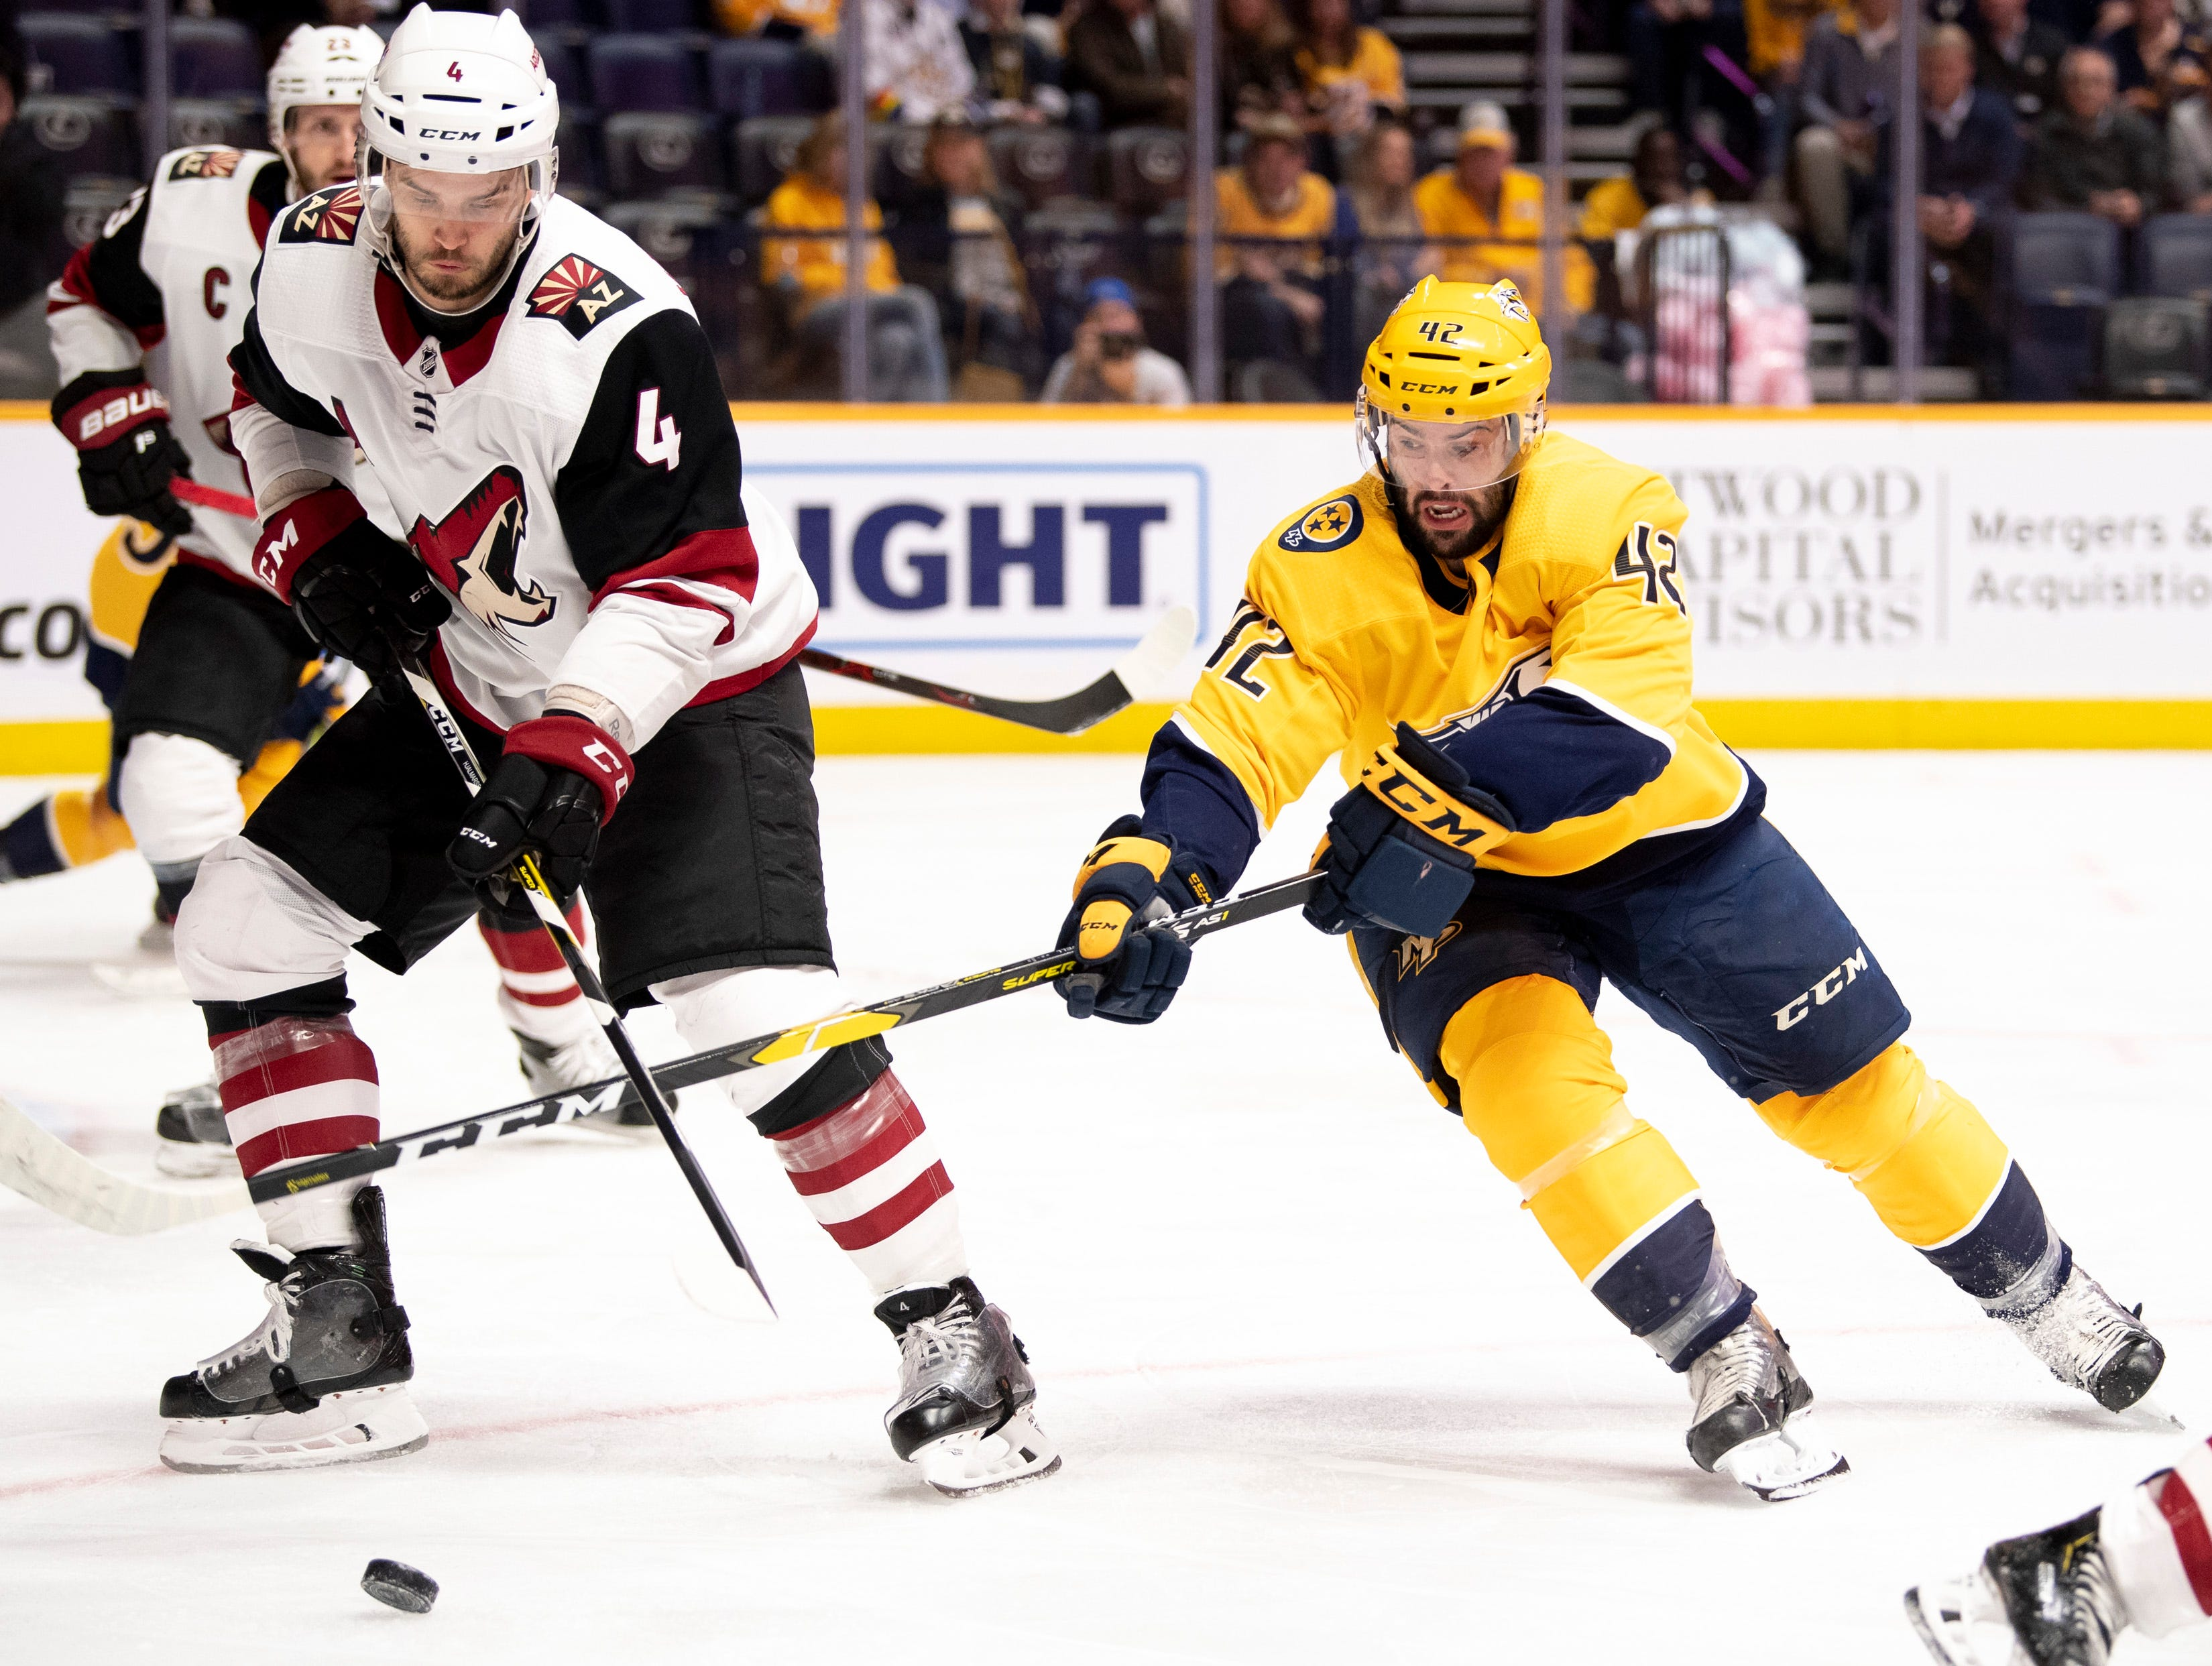 Nashville Predators center Colin Blackwell (42) fights for the puck with Arizona Coyotes defenseman Niklas Hjalmarsson (4) during the first period at Bridgestone Arena in Nashville, Tenn., Tuesday, Feb. 5, 2019.